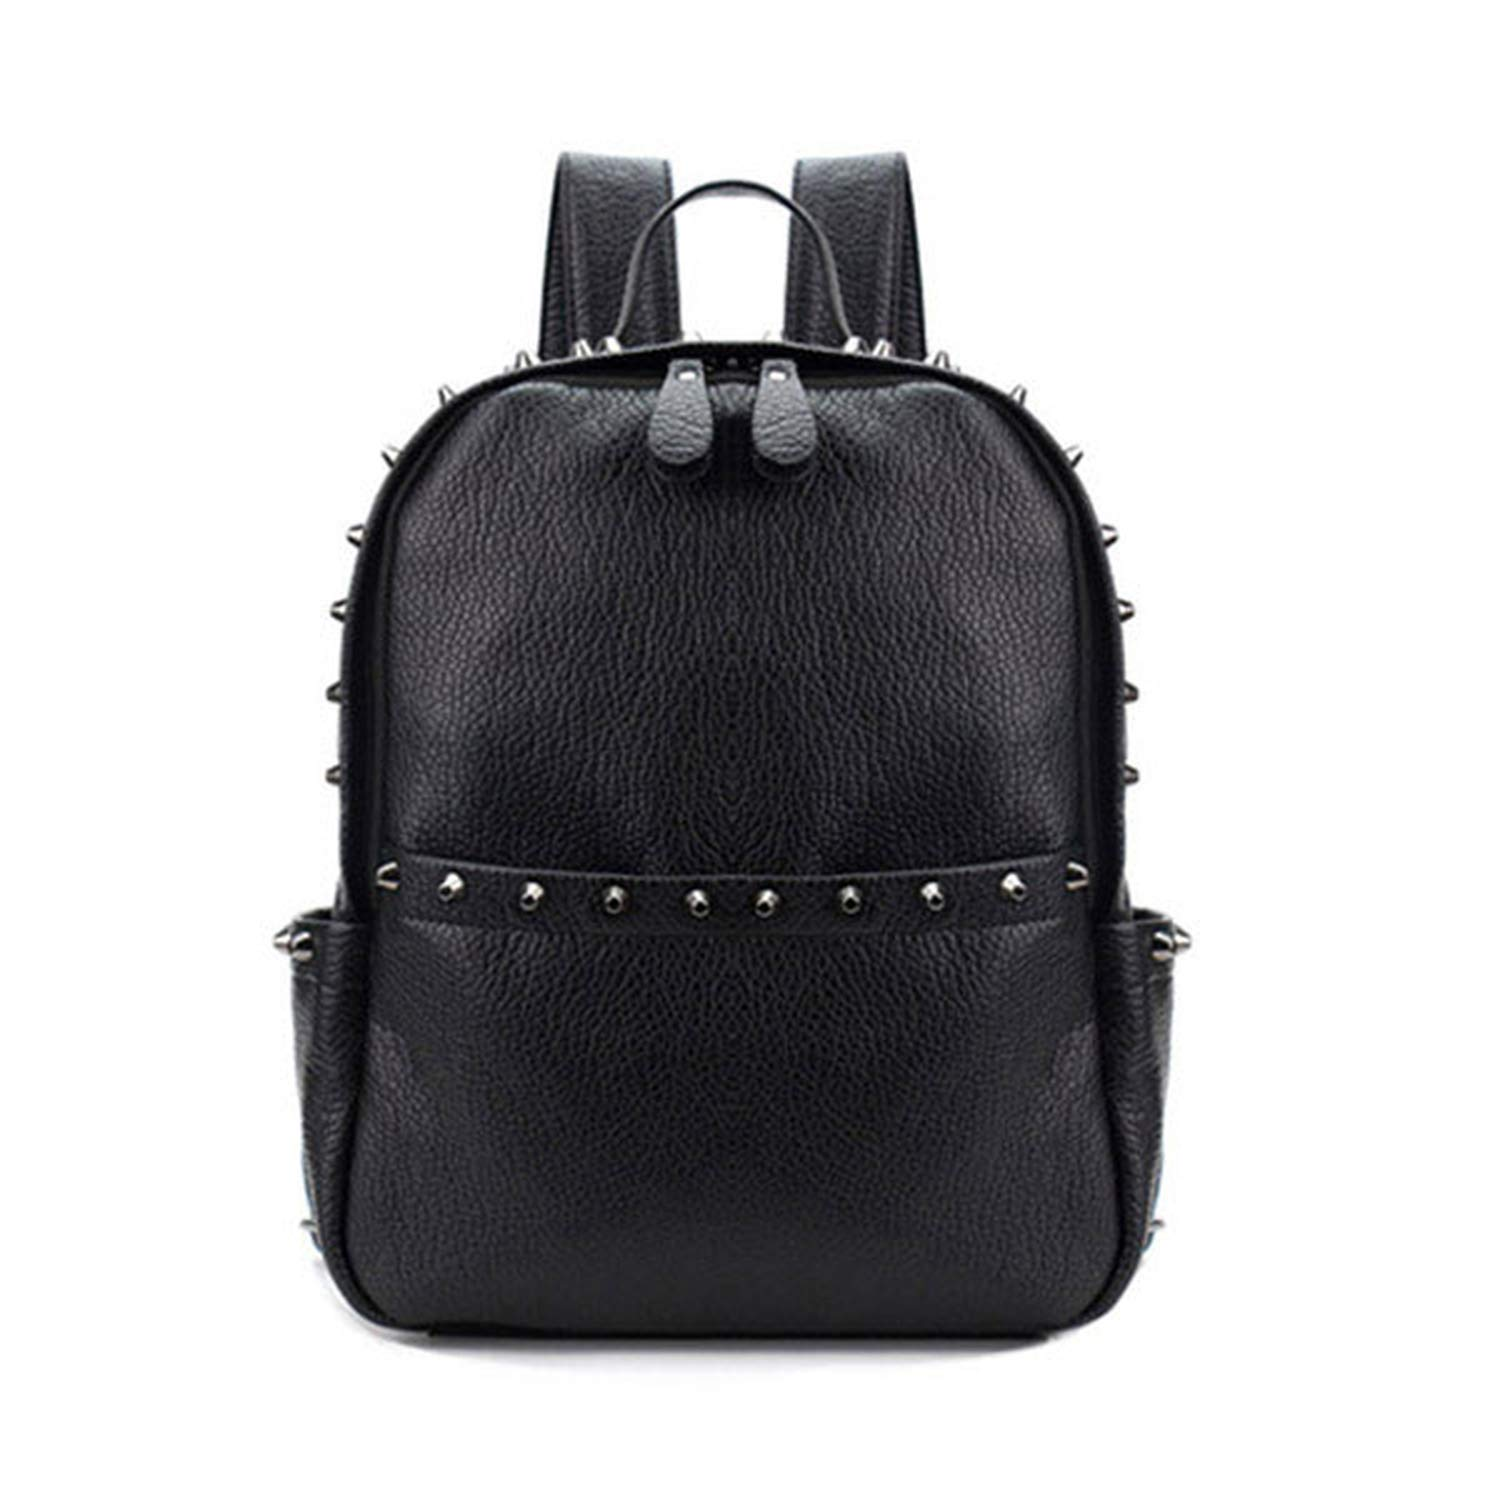 Amazon.com: Women Backpack Pu Leather School Bags Mochilas ...